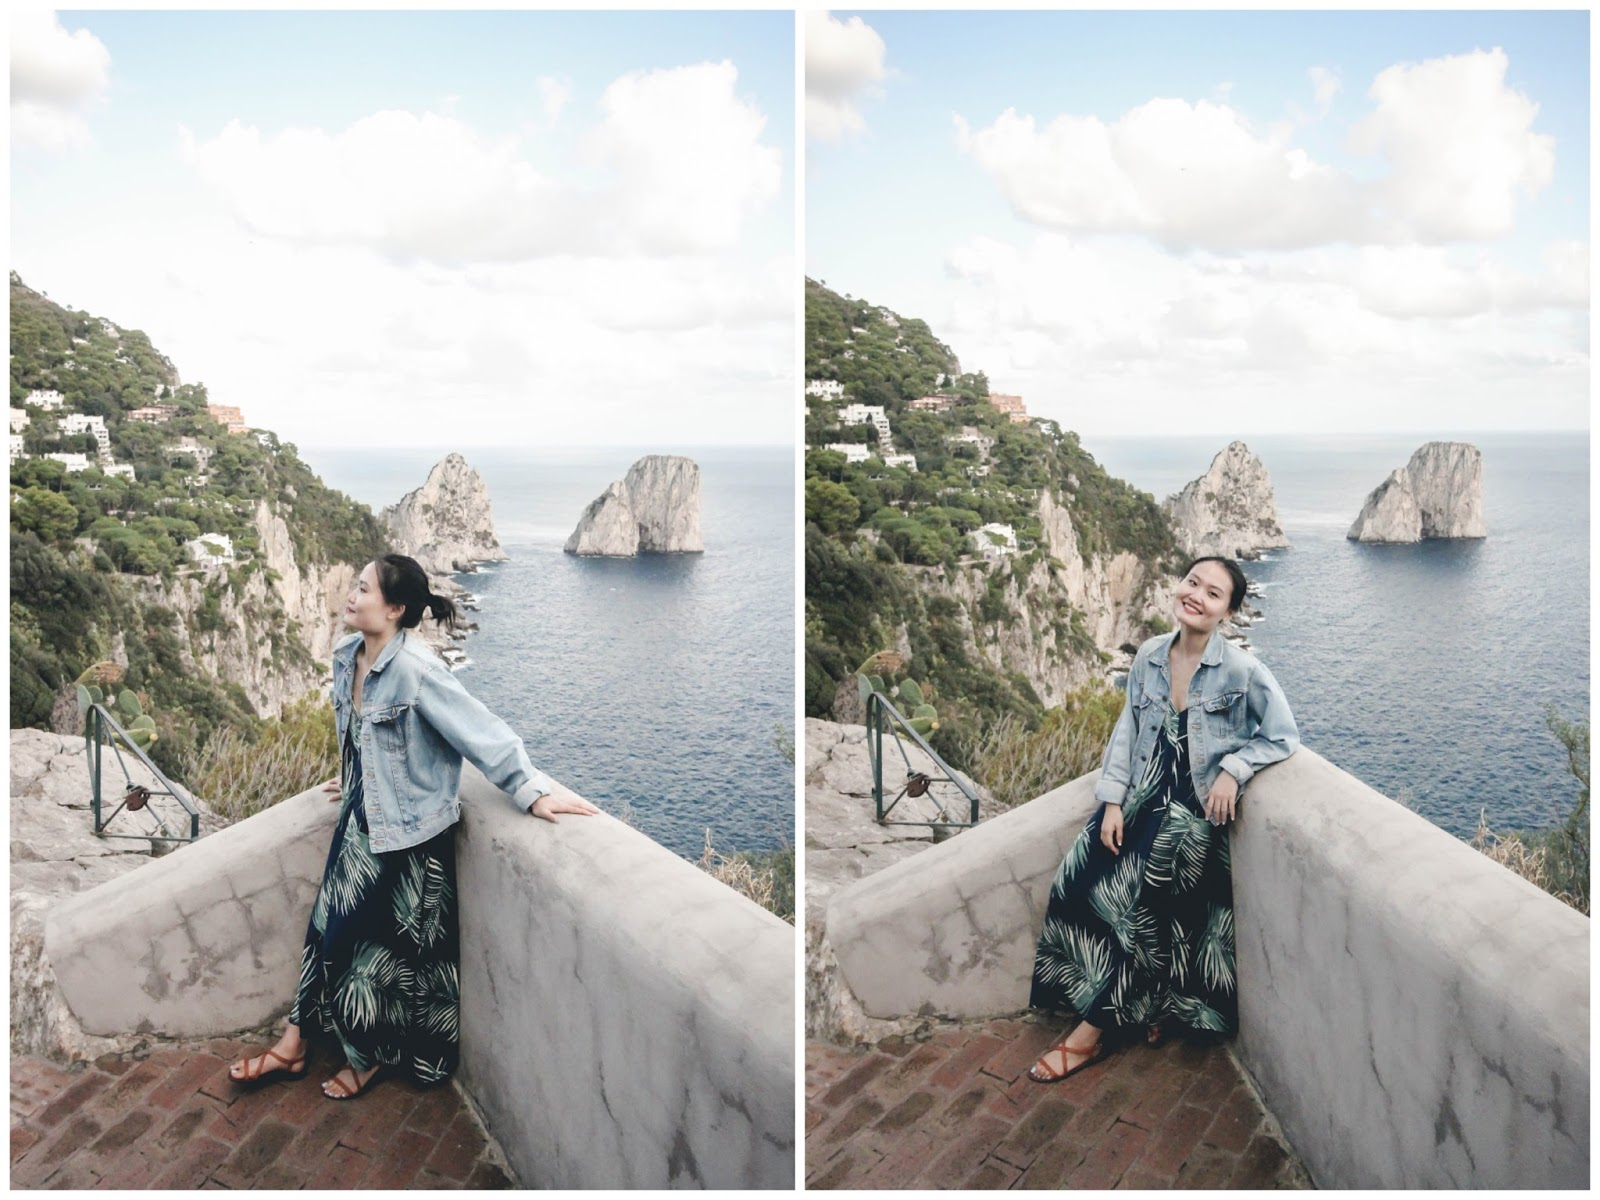 singapore blogger style stylist fashion look book street photographer photography holiday summer europe italy capri wiwt ootd